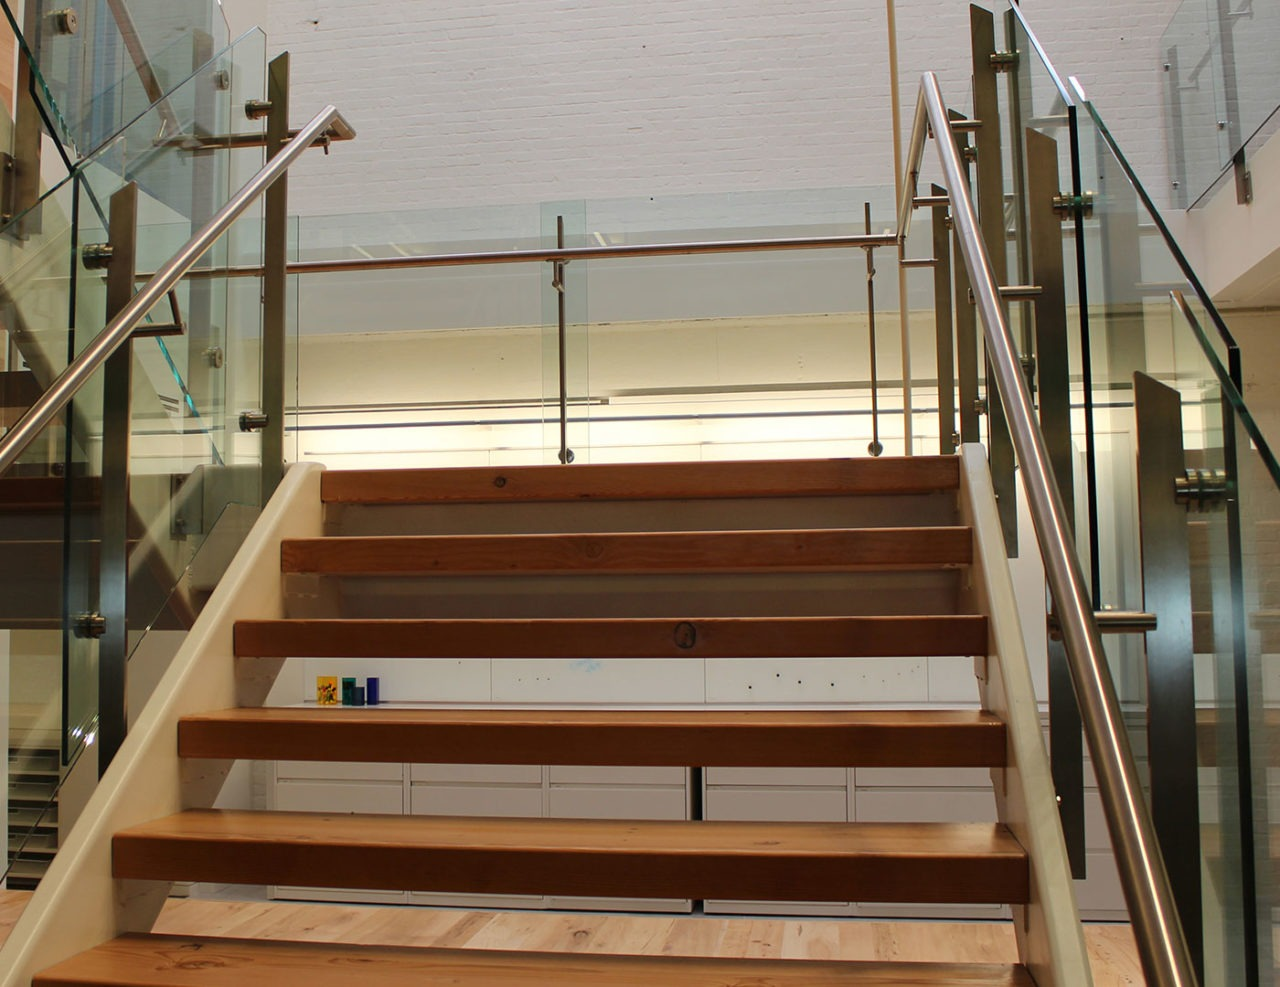 Post-mounted stainless steel handrails are used throughout the Summit railing system